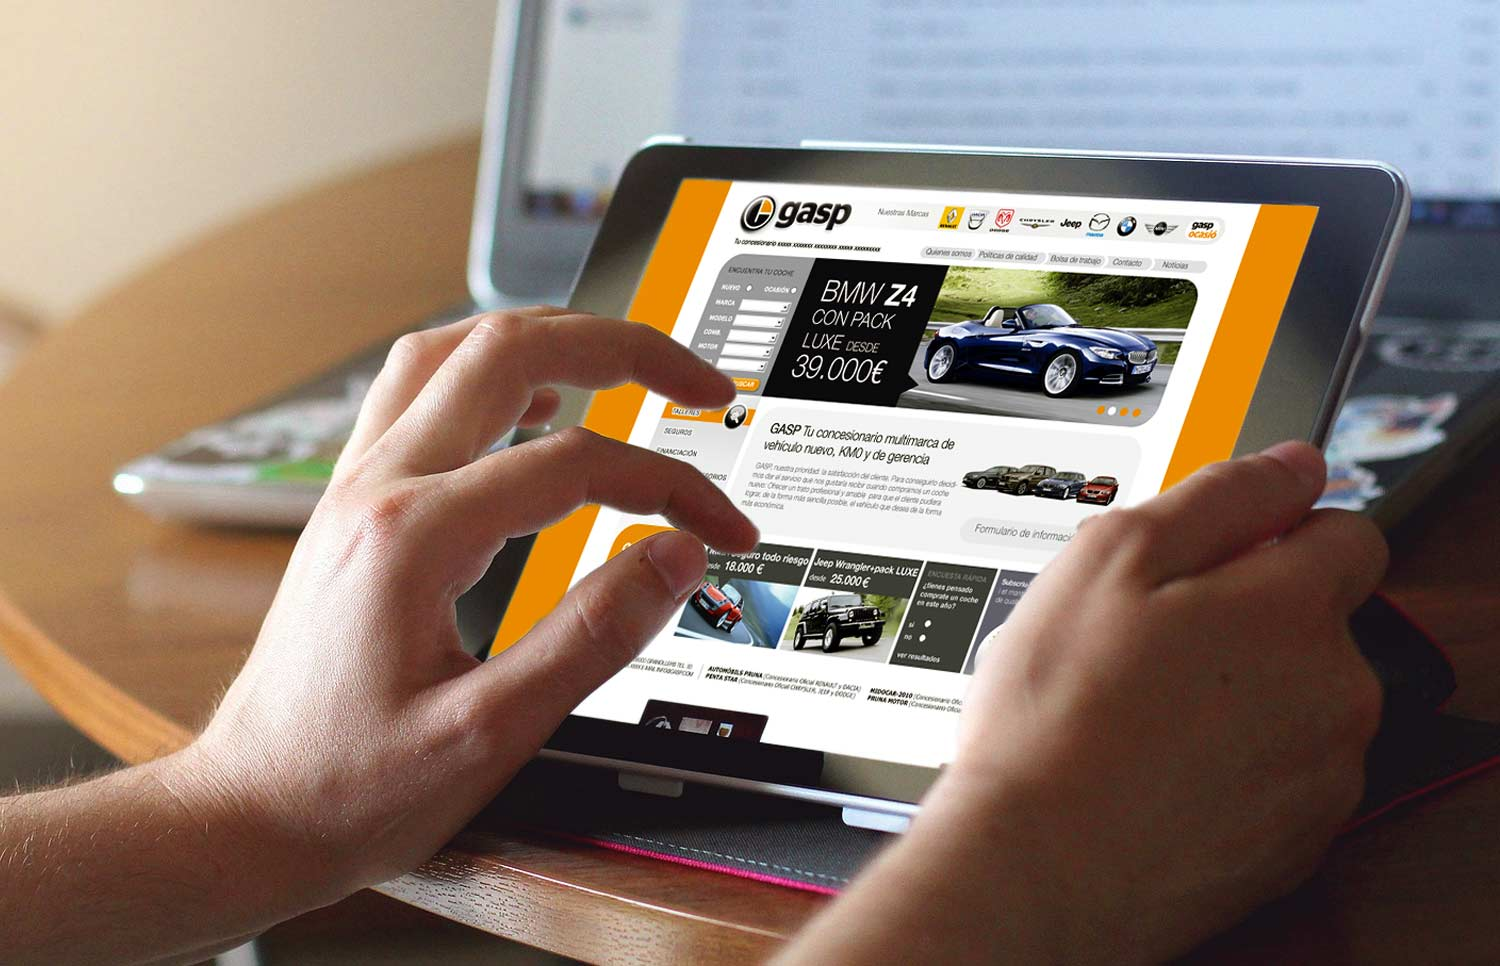 disseny web estudi barcelona 1 - Automotive sector website